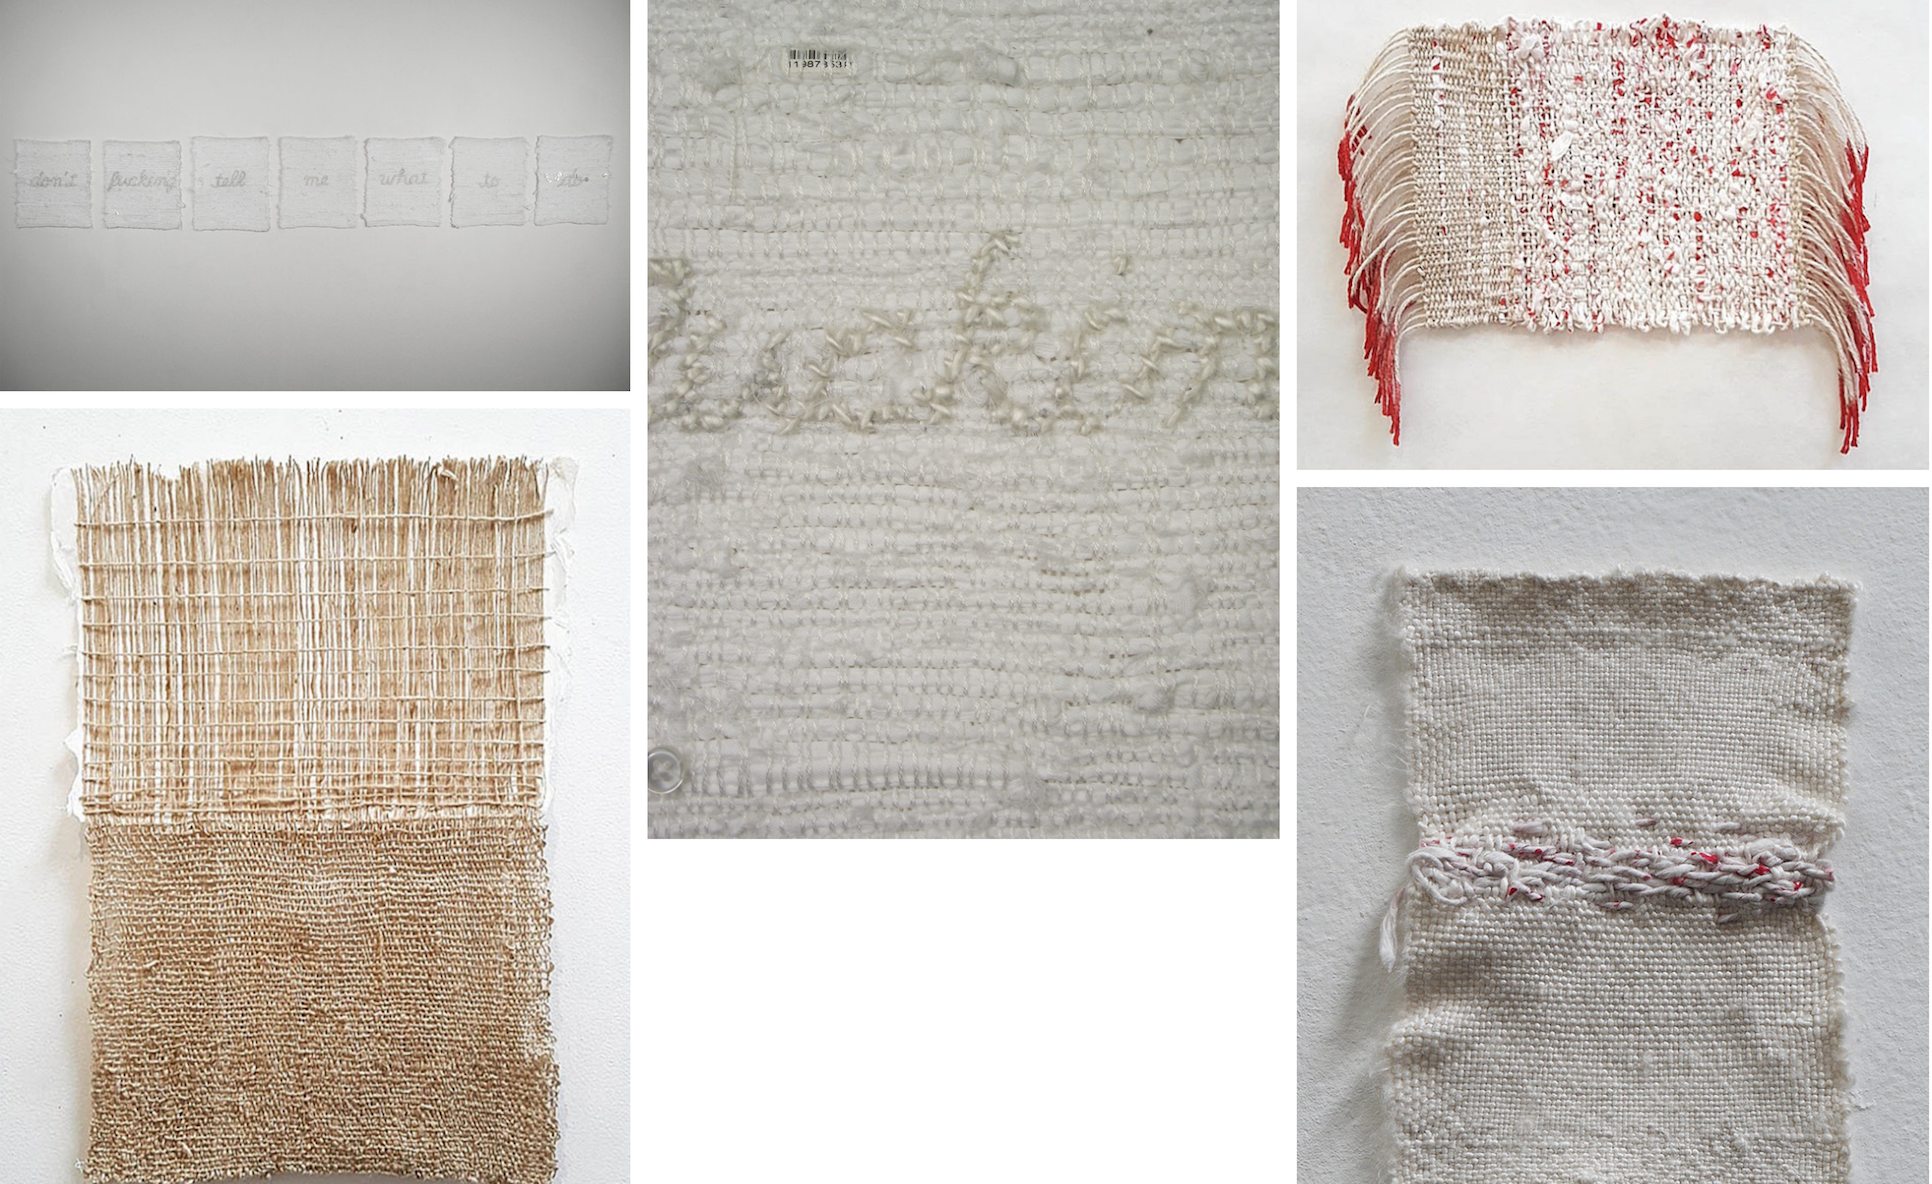 Textiles, paper & mixed media (composite from artist's website)